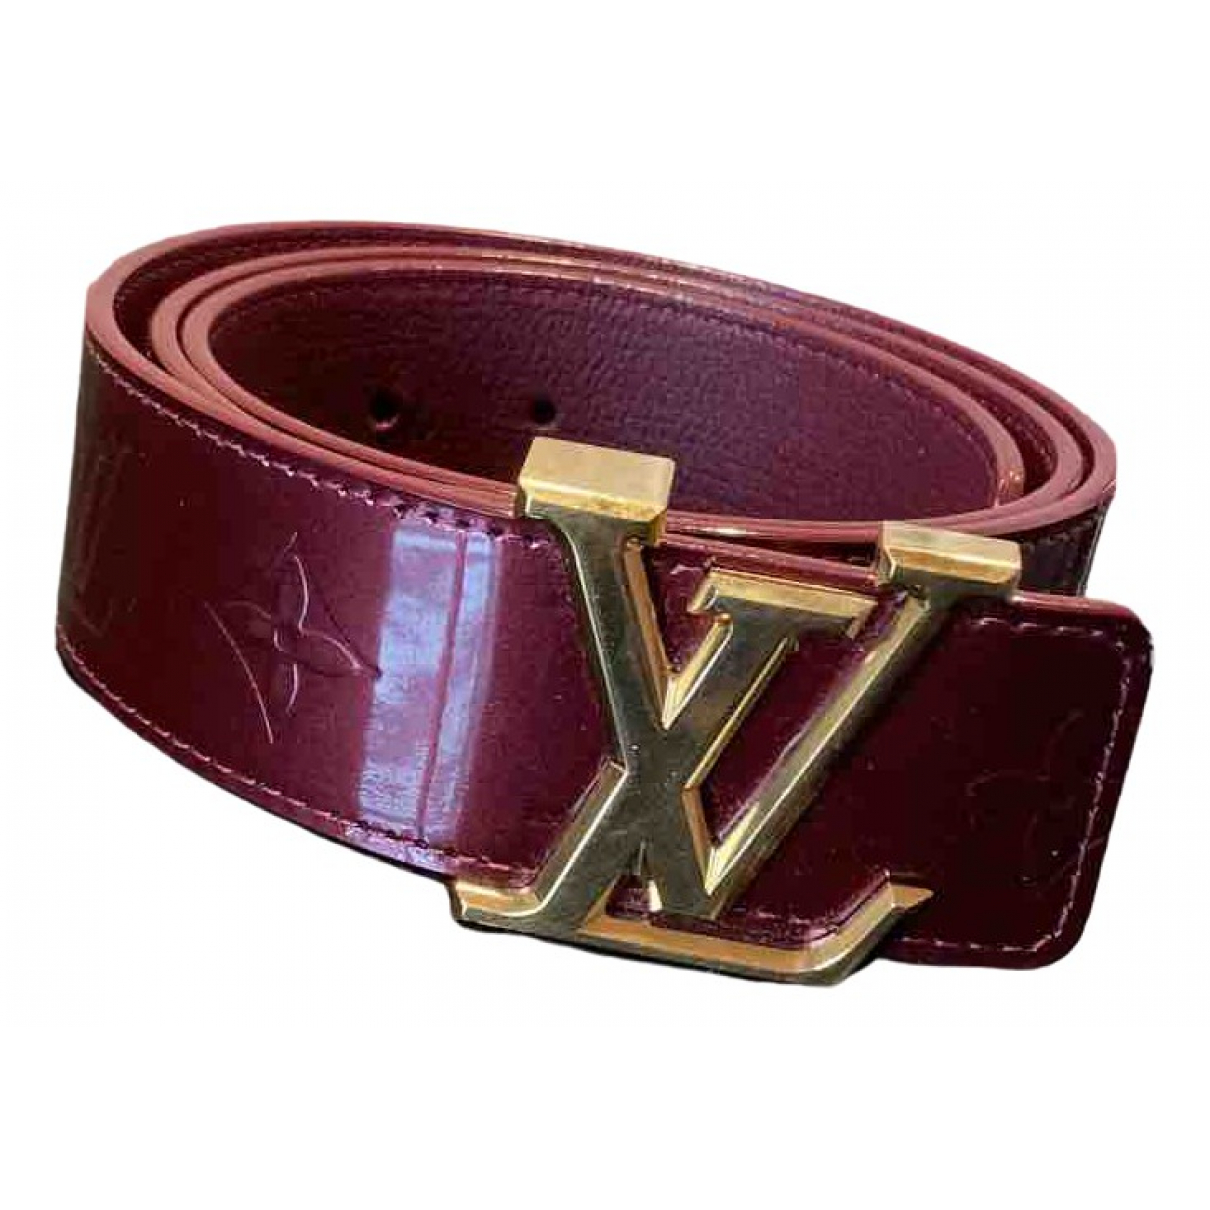 Louis Vuitton Initiales Burgundy Patent leather belt for Women 85 cm